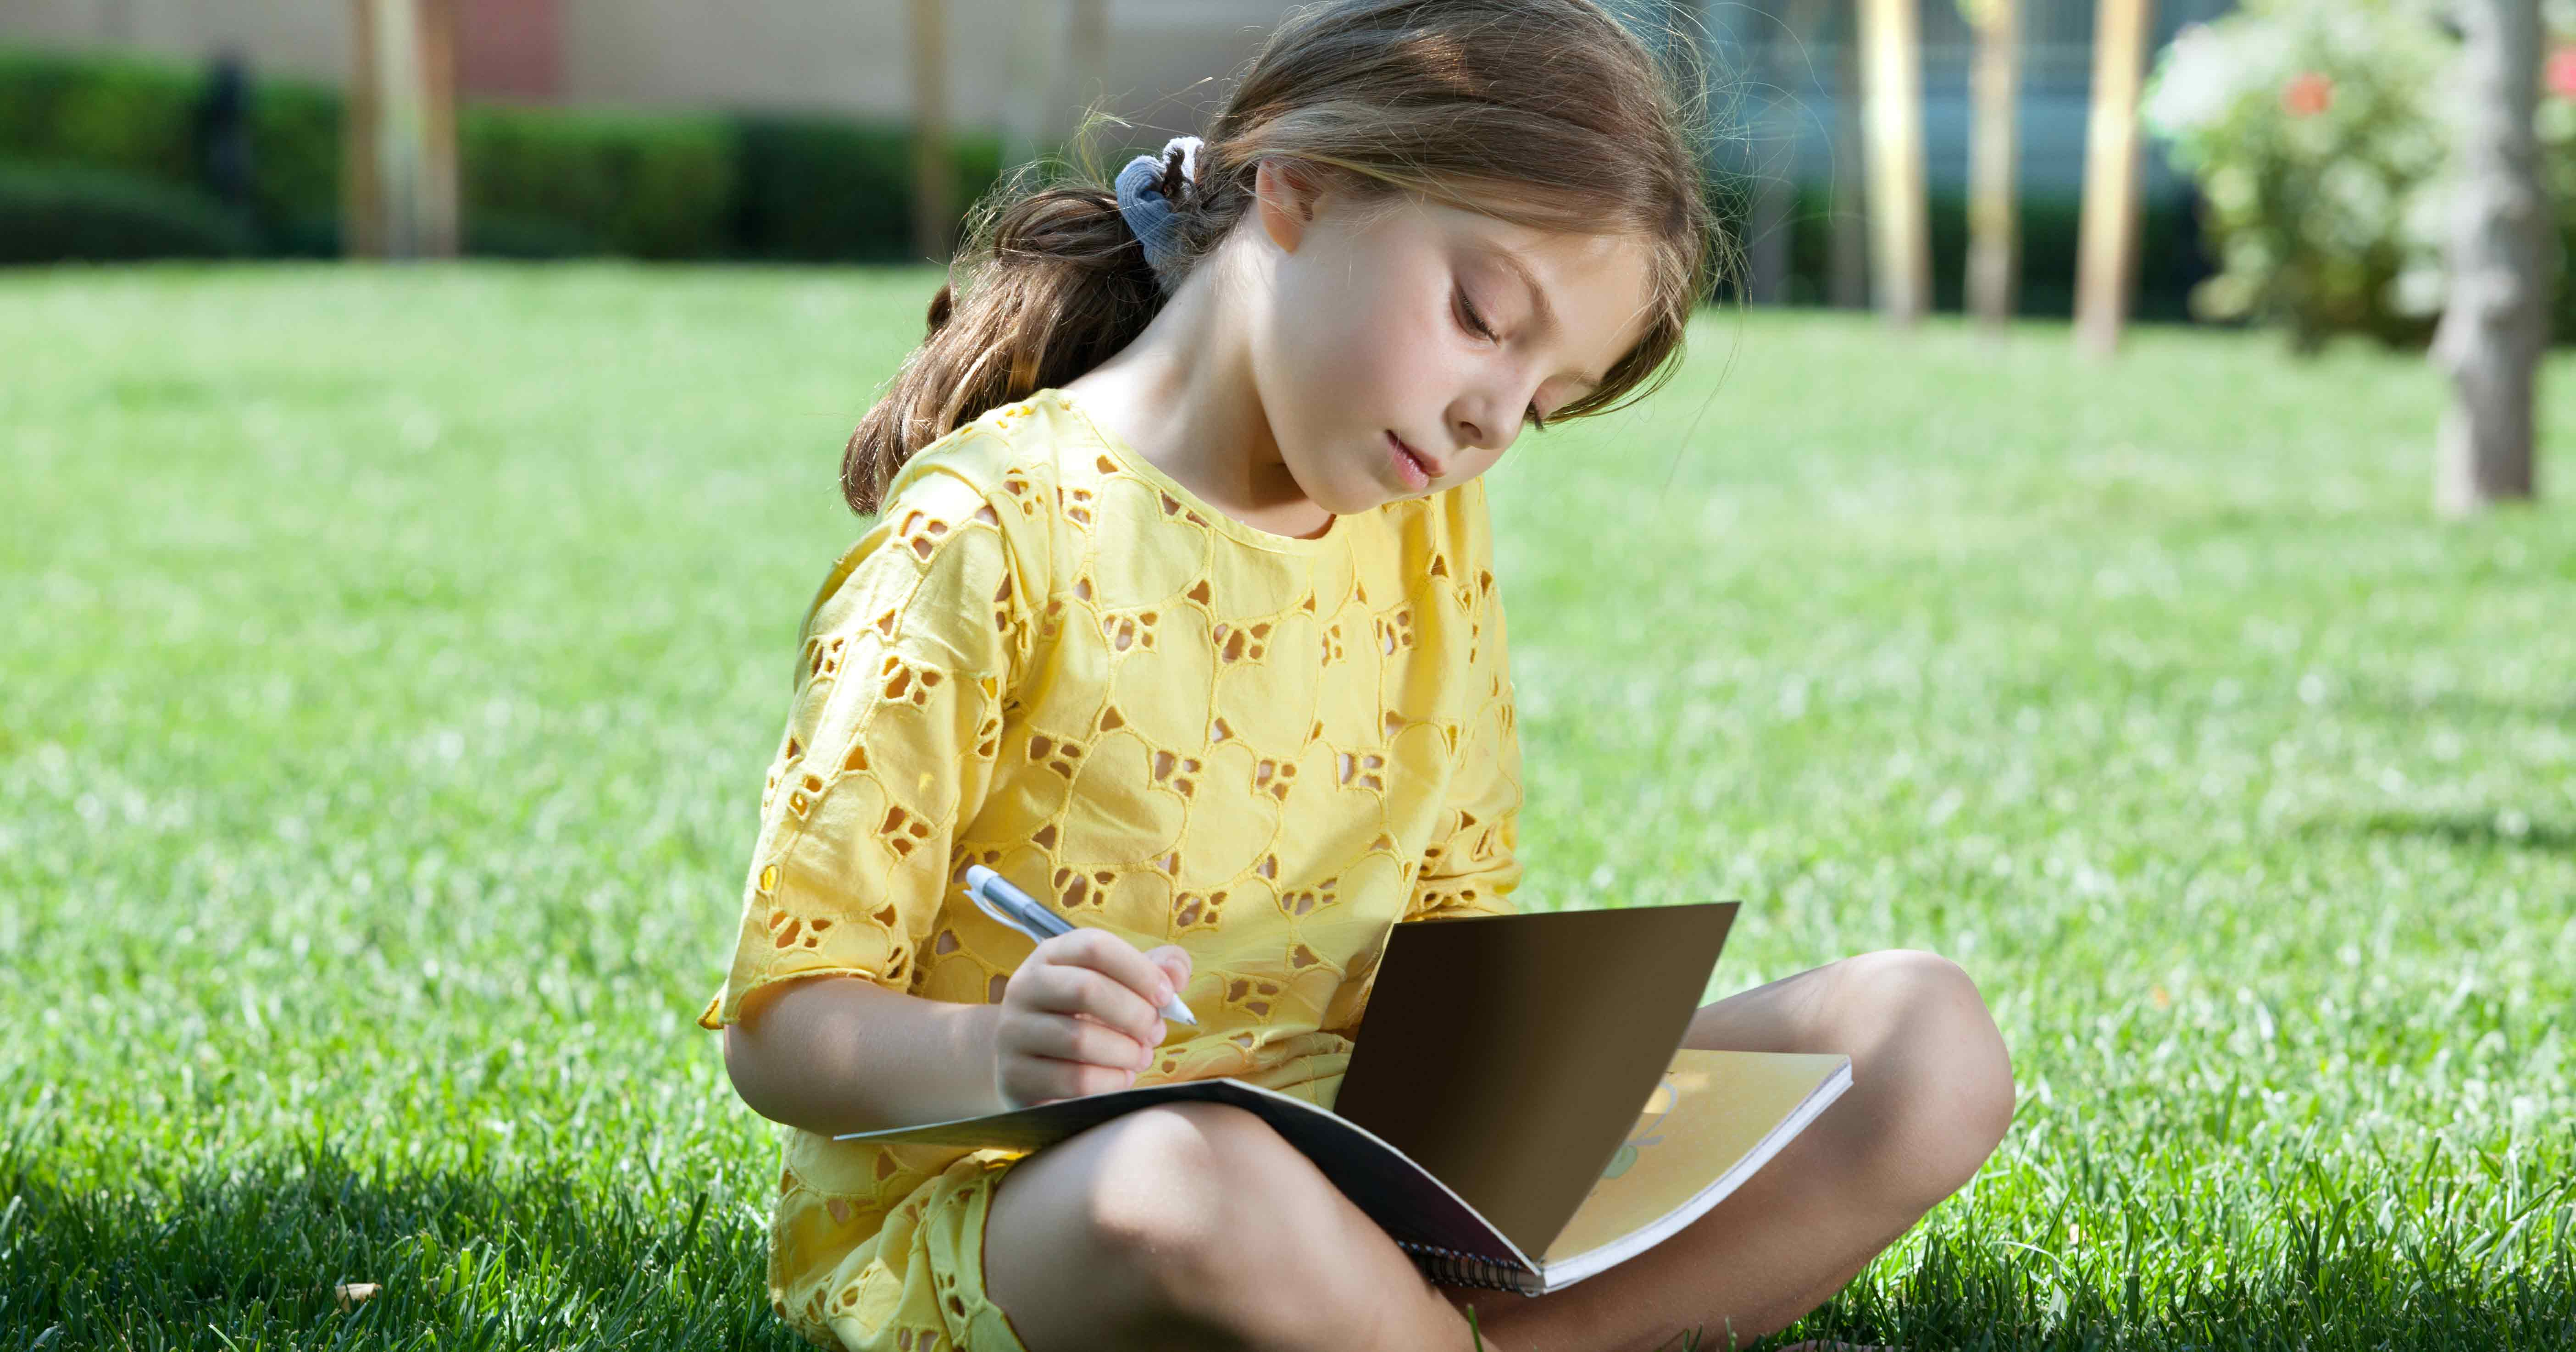 A travel journal can keep students intellectually engaged over the summer.